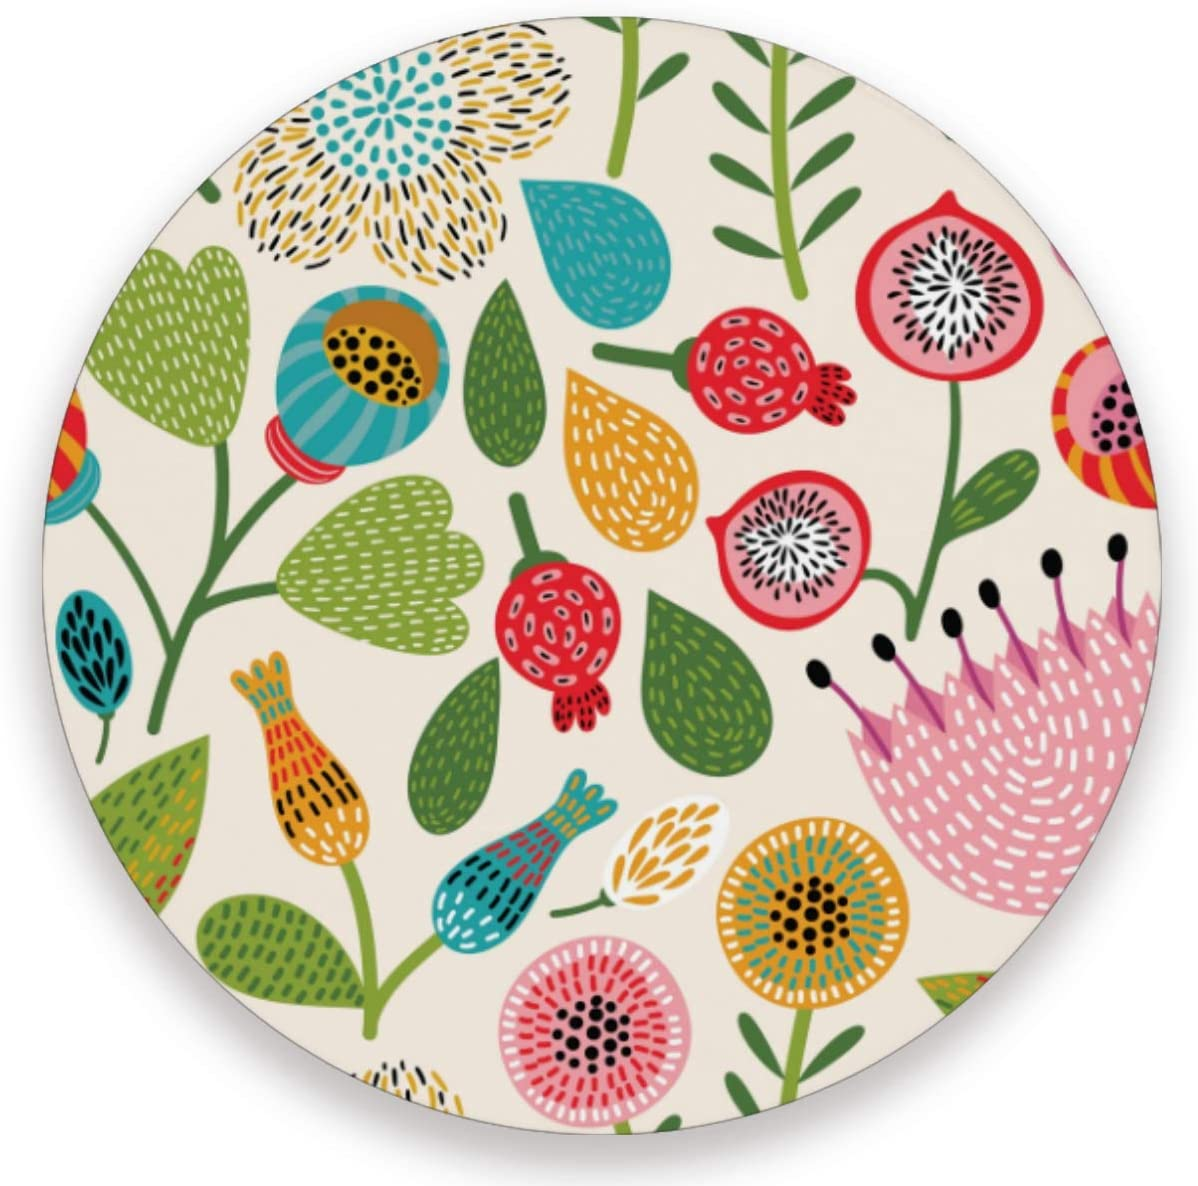 visesunny New Cute Floral Pattern Drink Coaster Moisture Absorbing Stone Coasters with Cork Base Non-Slip Cup Place Mats for Cold Drink Coffee and Wine, 1 Piece